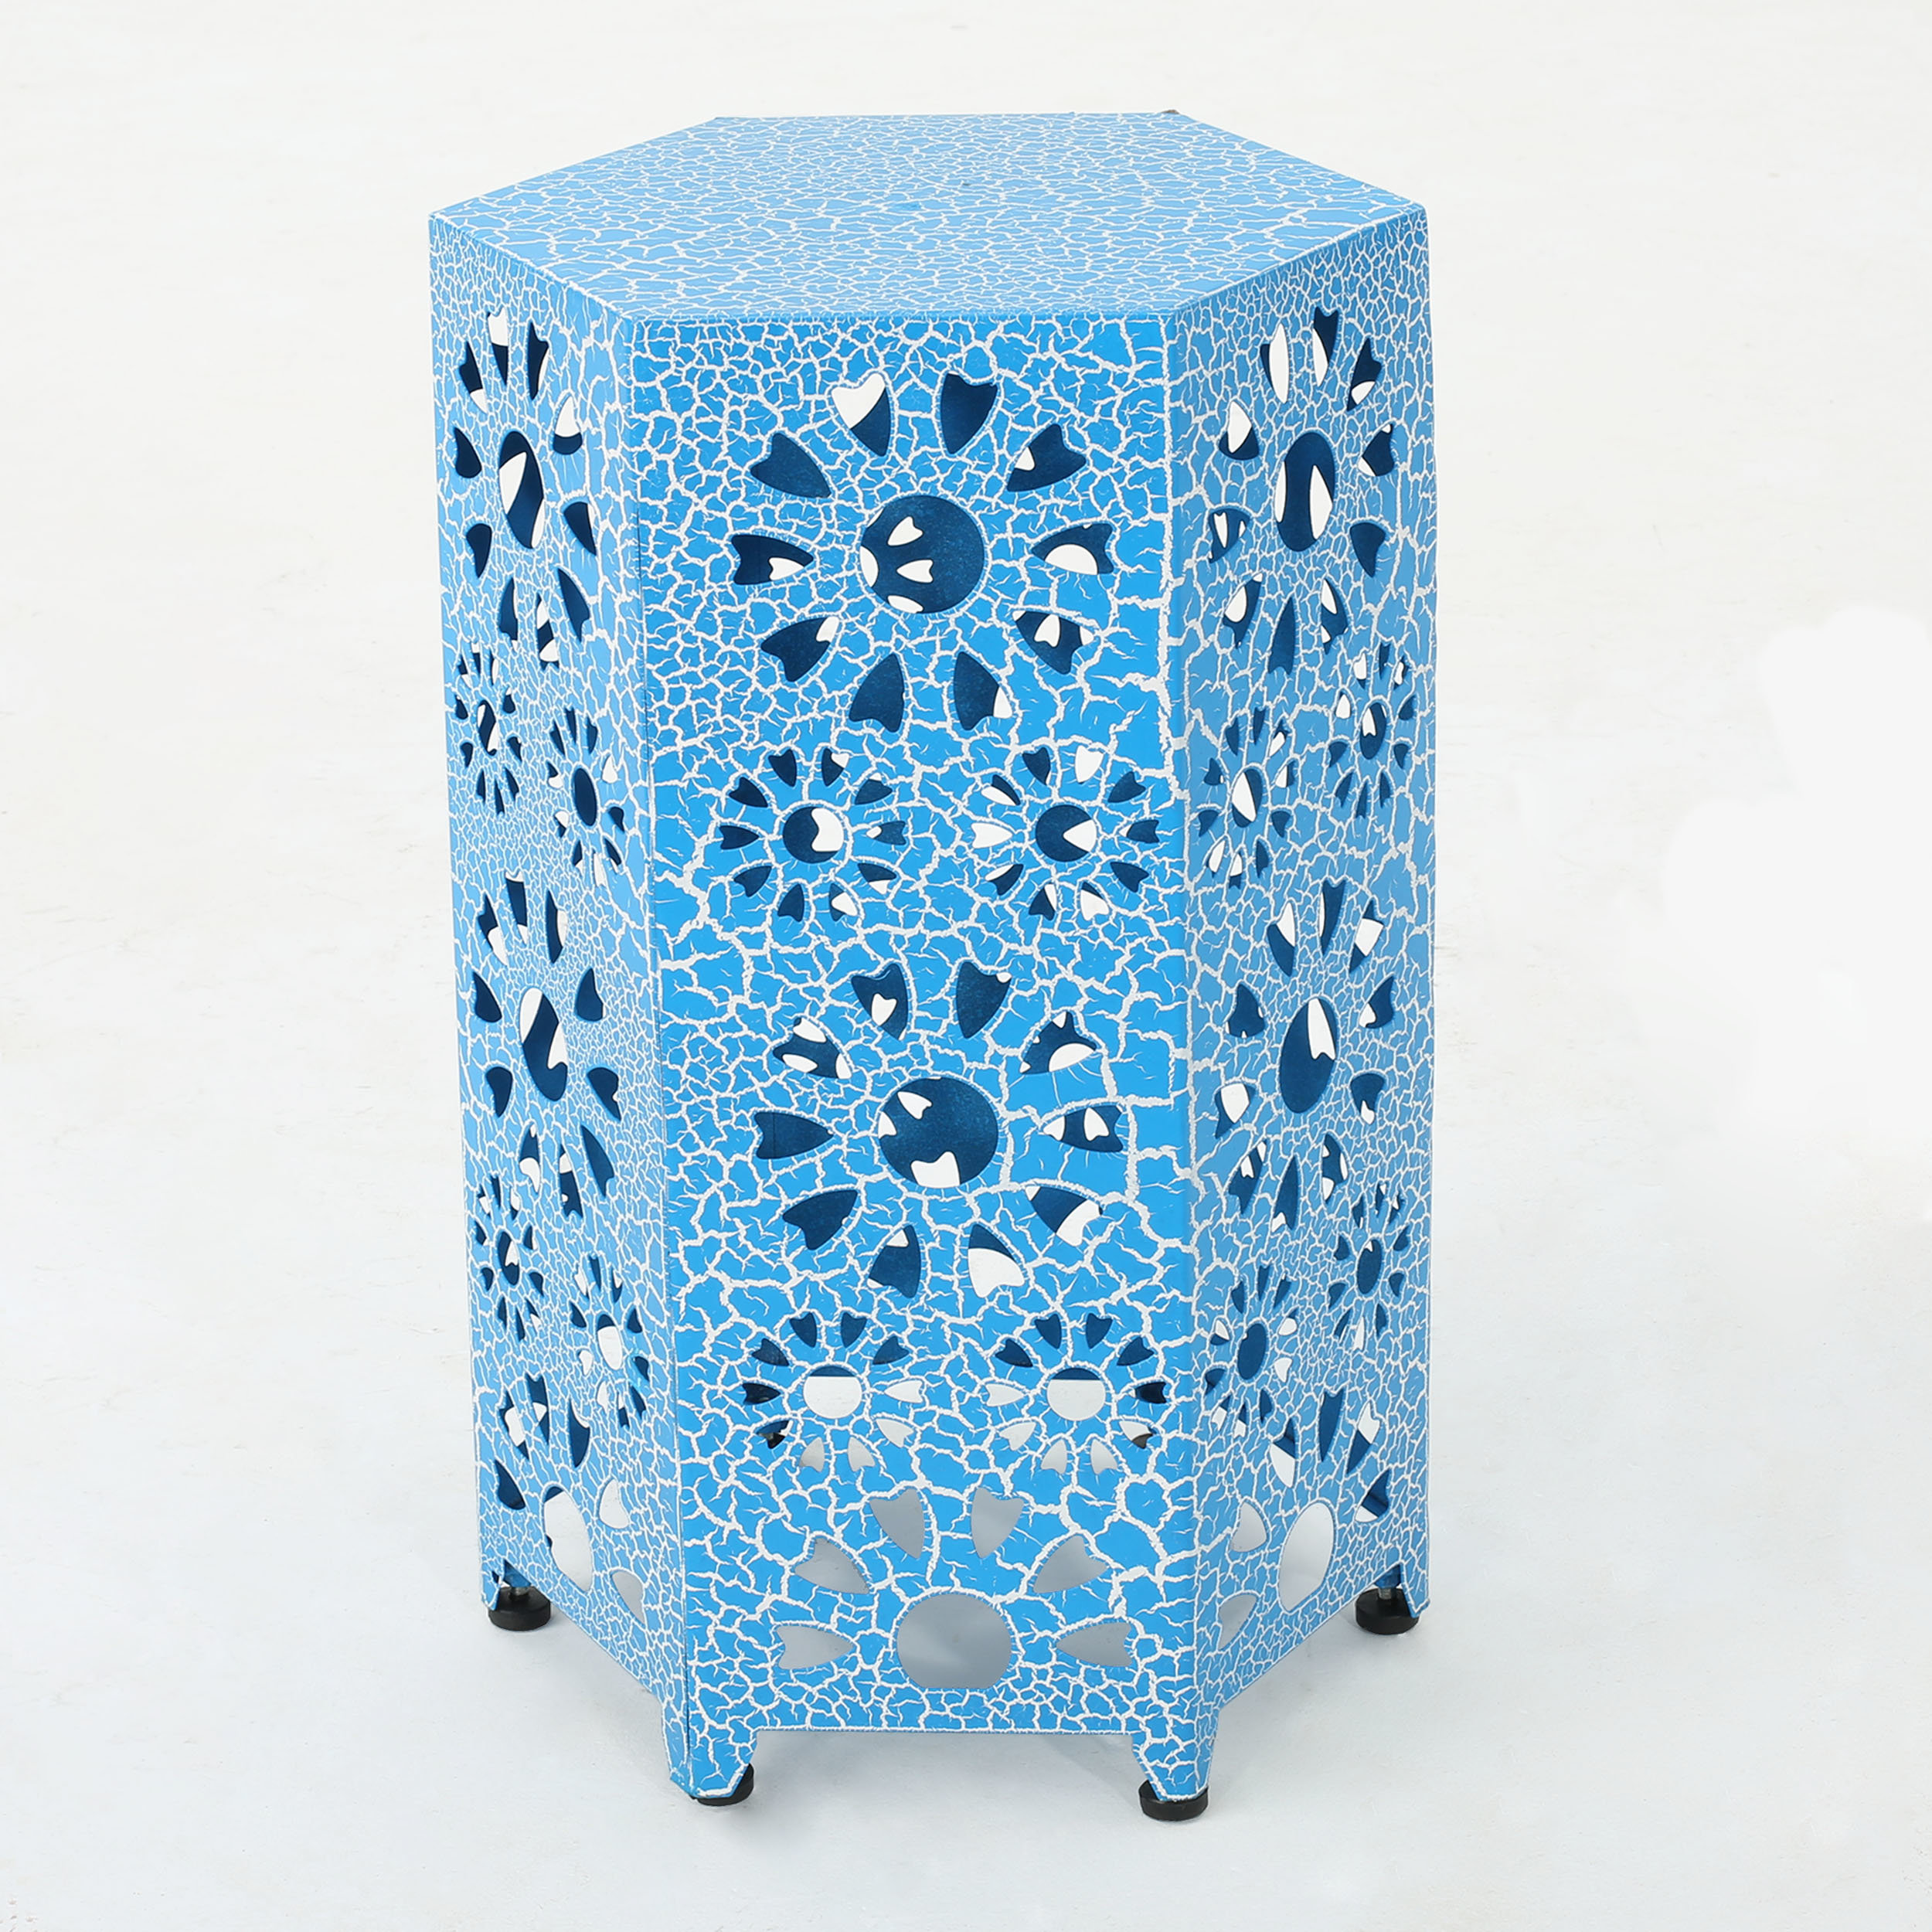 hexagon end side tables joss main bales table fretwork accent blue quickview cloth bronze rain drum dale tiffany glass wall art modern outdoor slim ikea furniture cupboards for